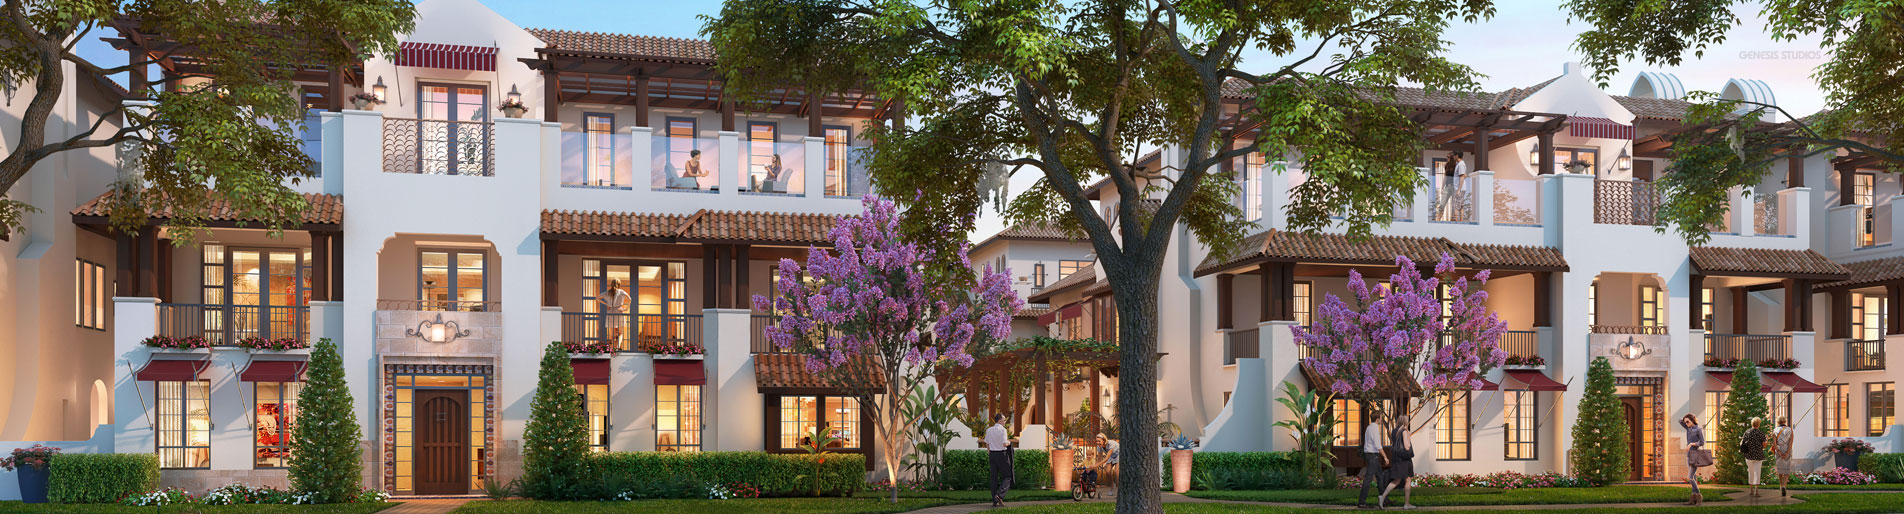 717110 Digital Photorealistic Architectural Renderings of Winter Park Townhomes for ACi Architects